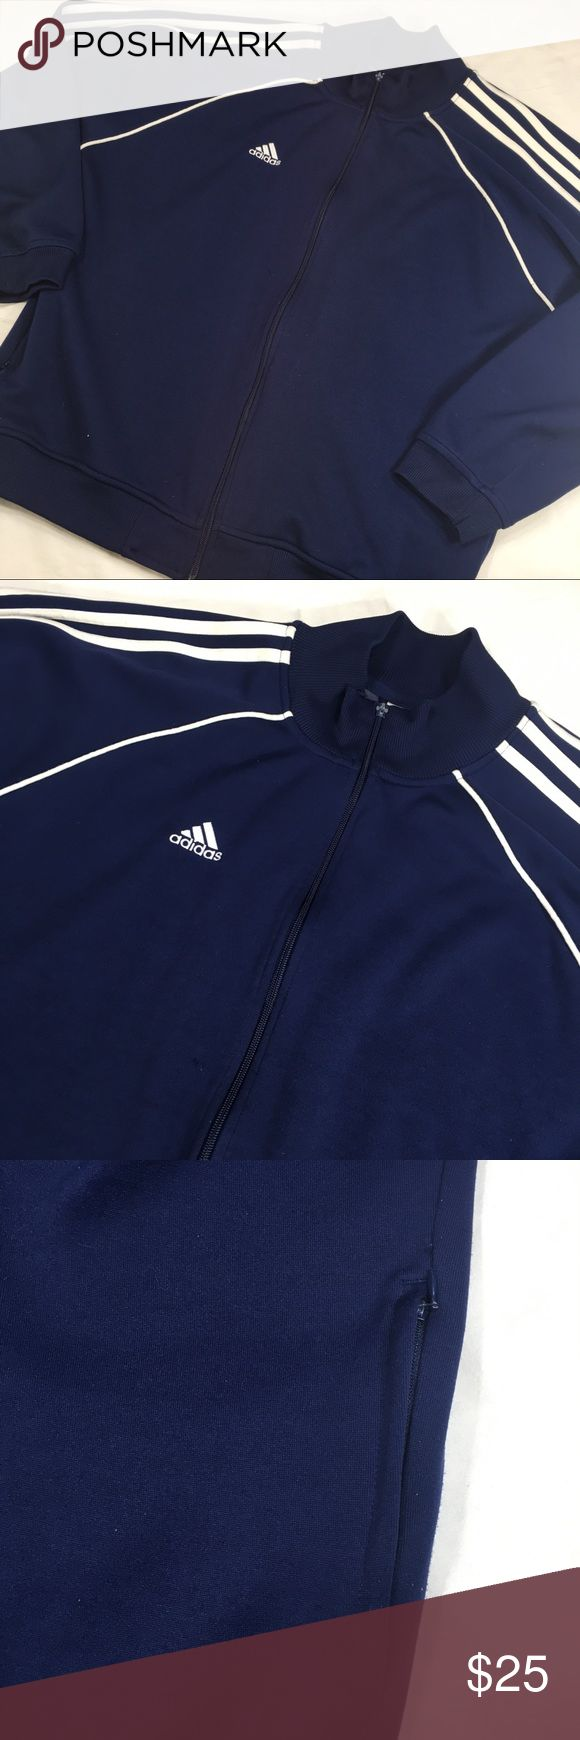 """Adidas Navy Blue Zip Up Track Jacket Gently worn. Size: Large Length: 29"""" Underarm to Underarm: 29.5"""" Material: Polyester/Cotton *Zipper Pull Missing But Still Zips adidas Jackets & Coats"""